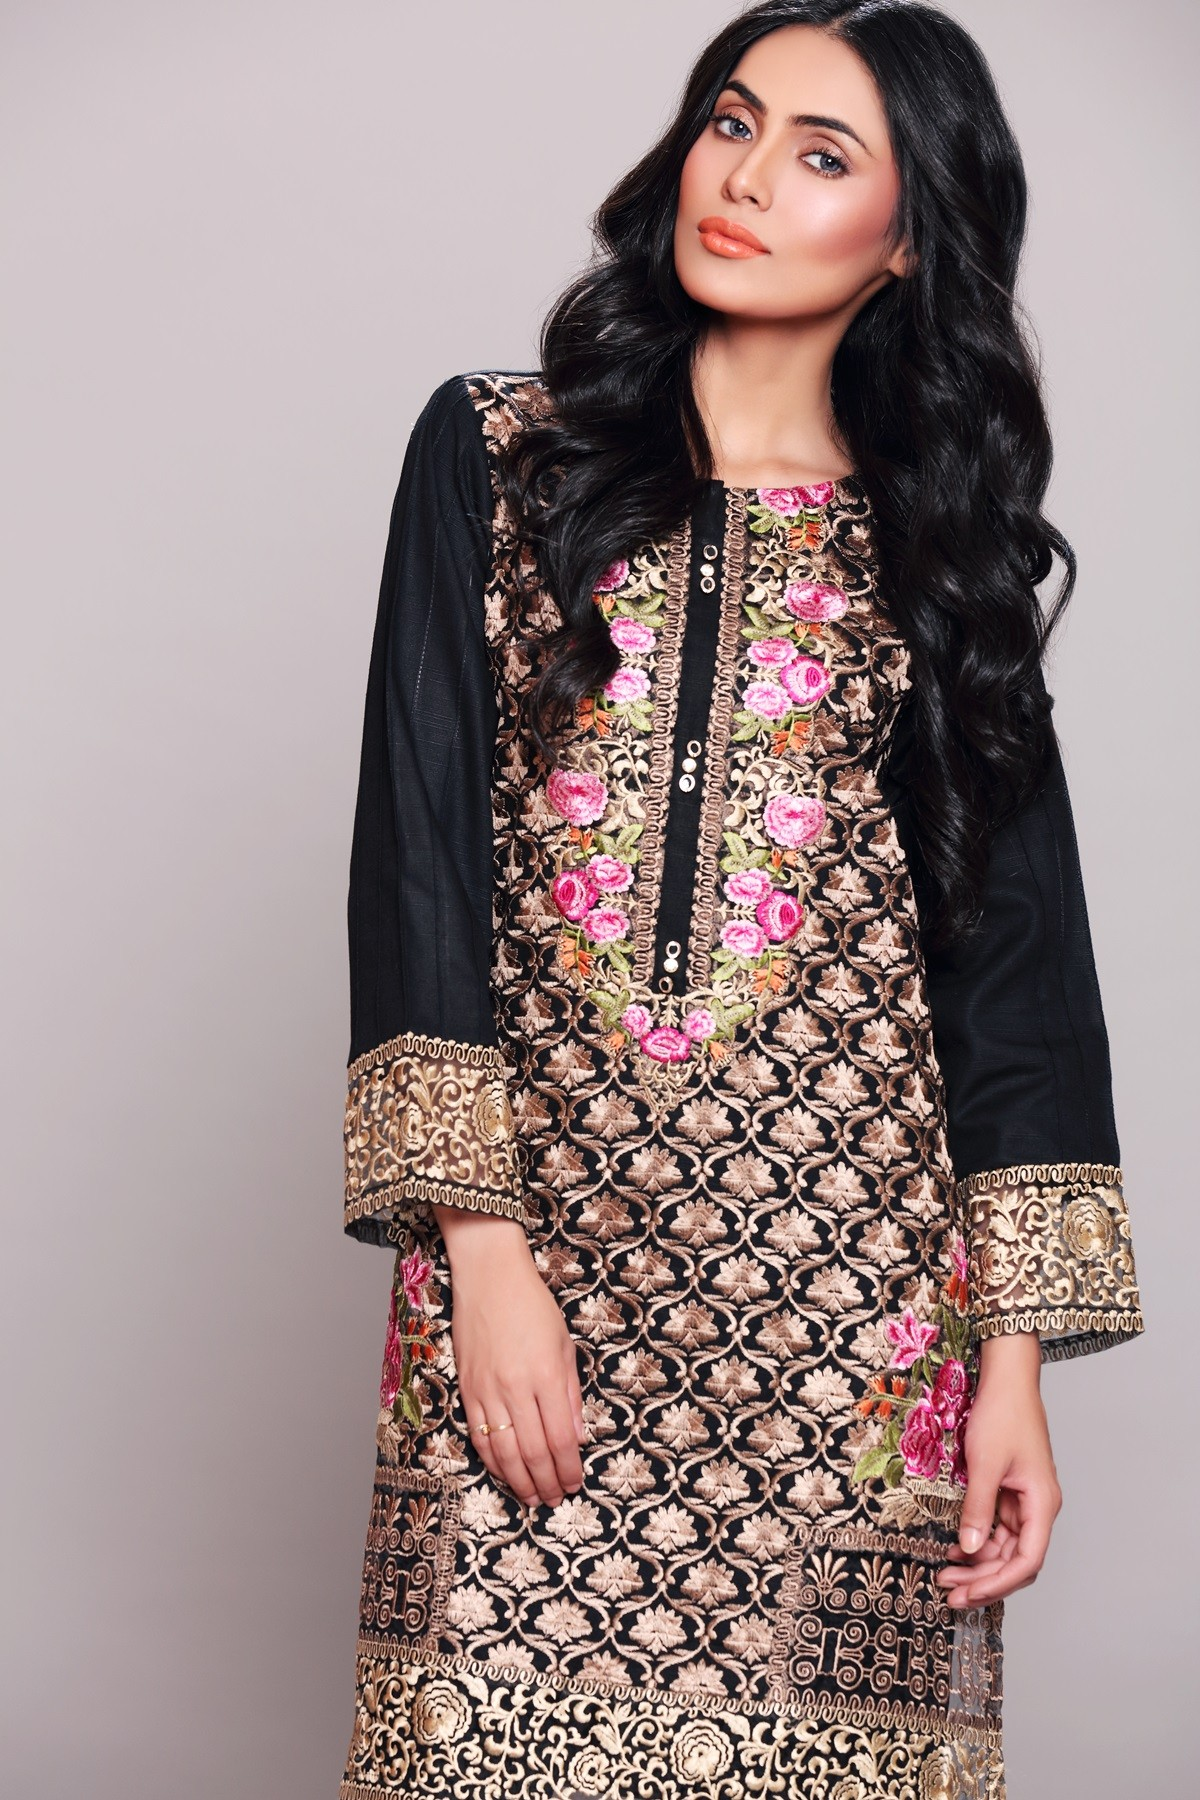 2019 year looks- Best mausummery women dresses collection